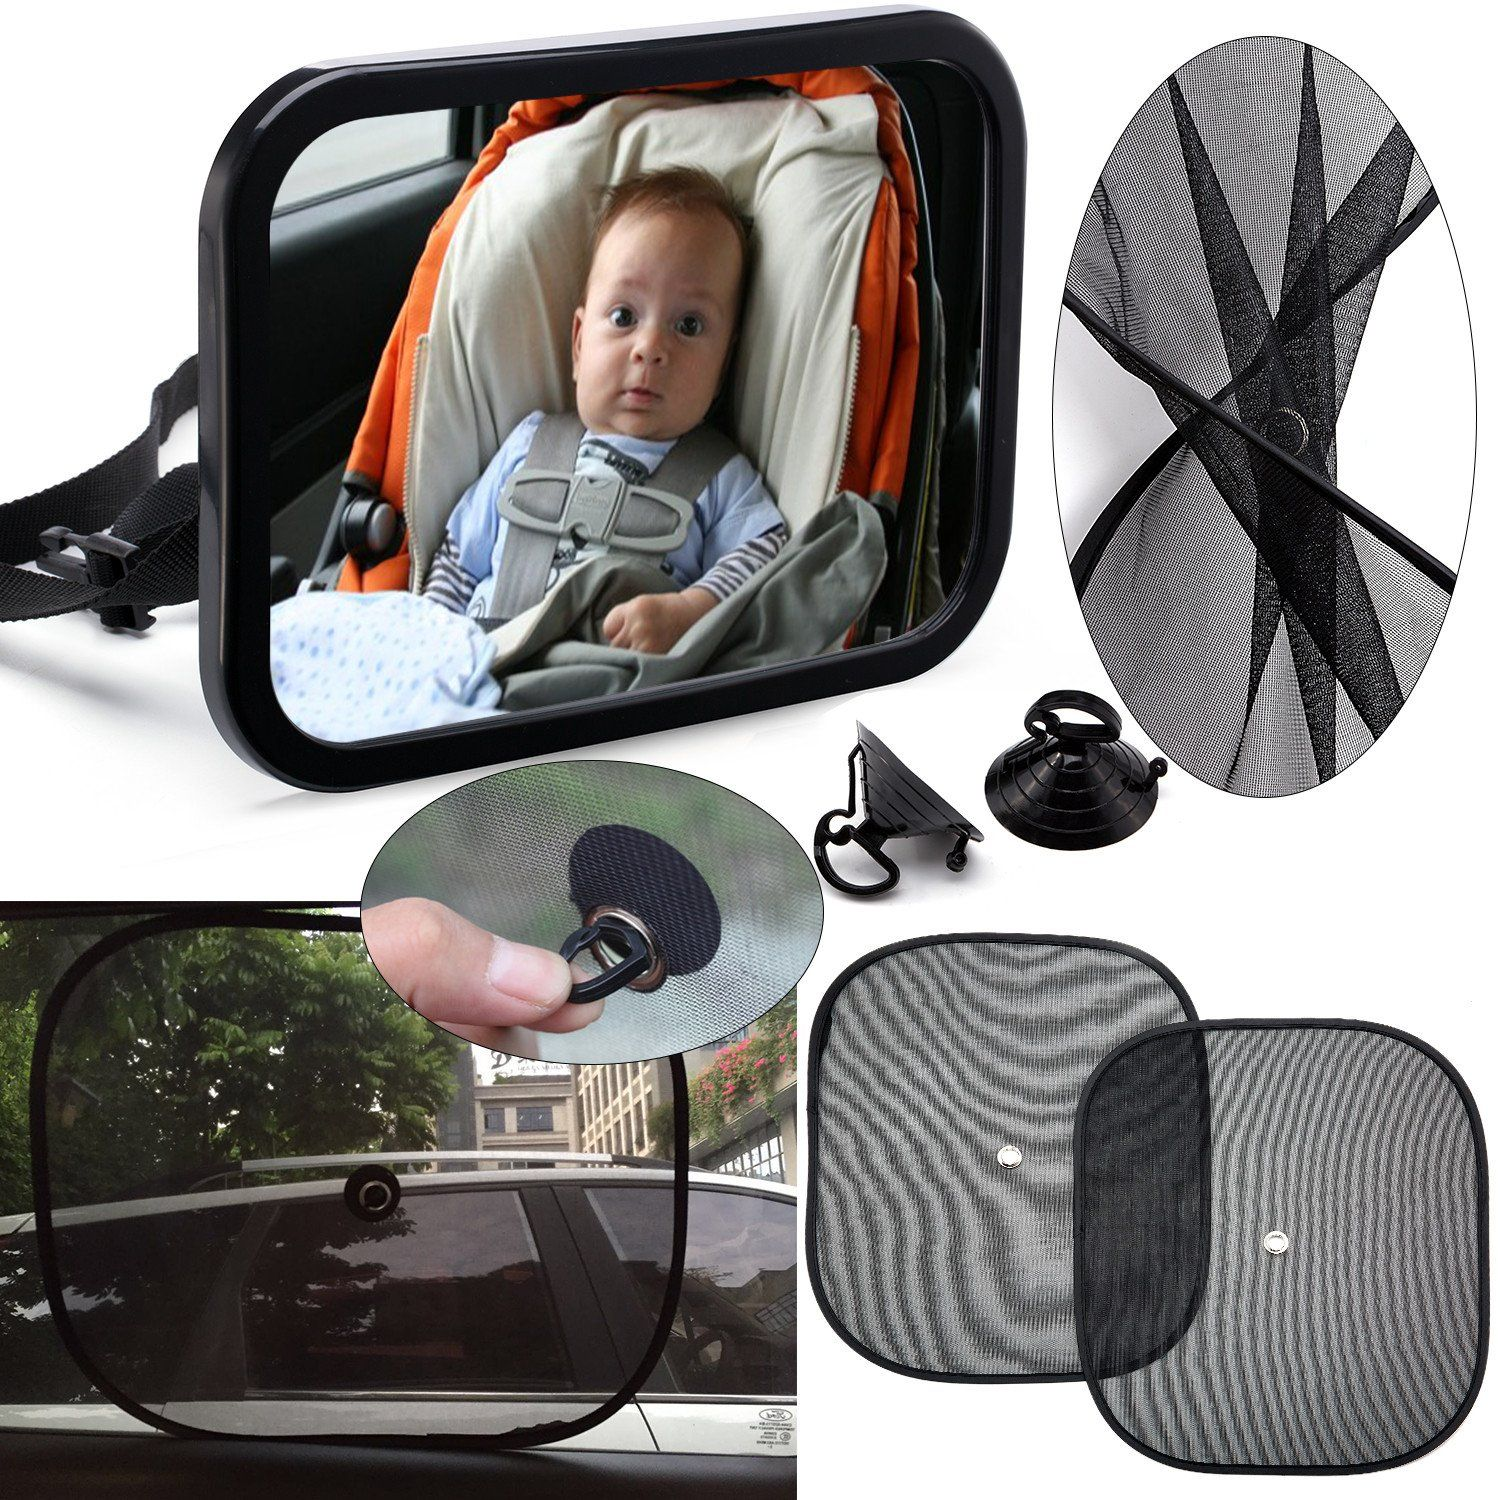 Taf toys car seat toy  Baby Backseat Mirror for Car COMBO w  Universal Window Shades